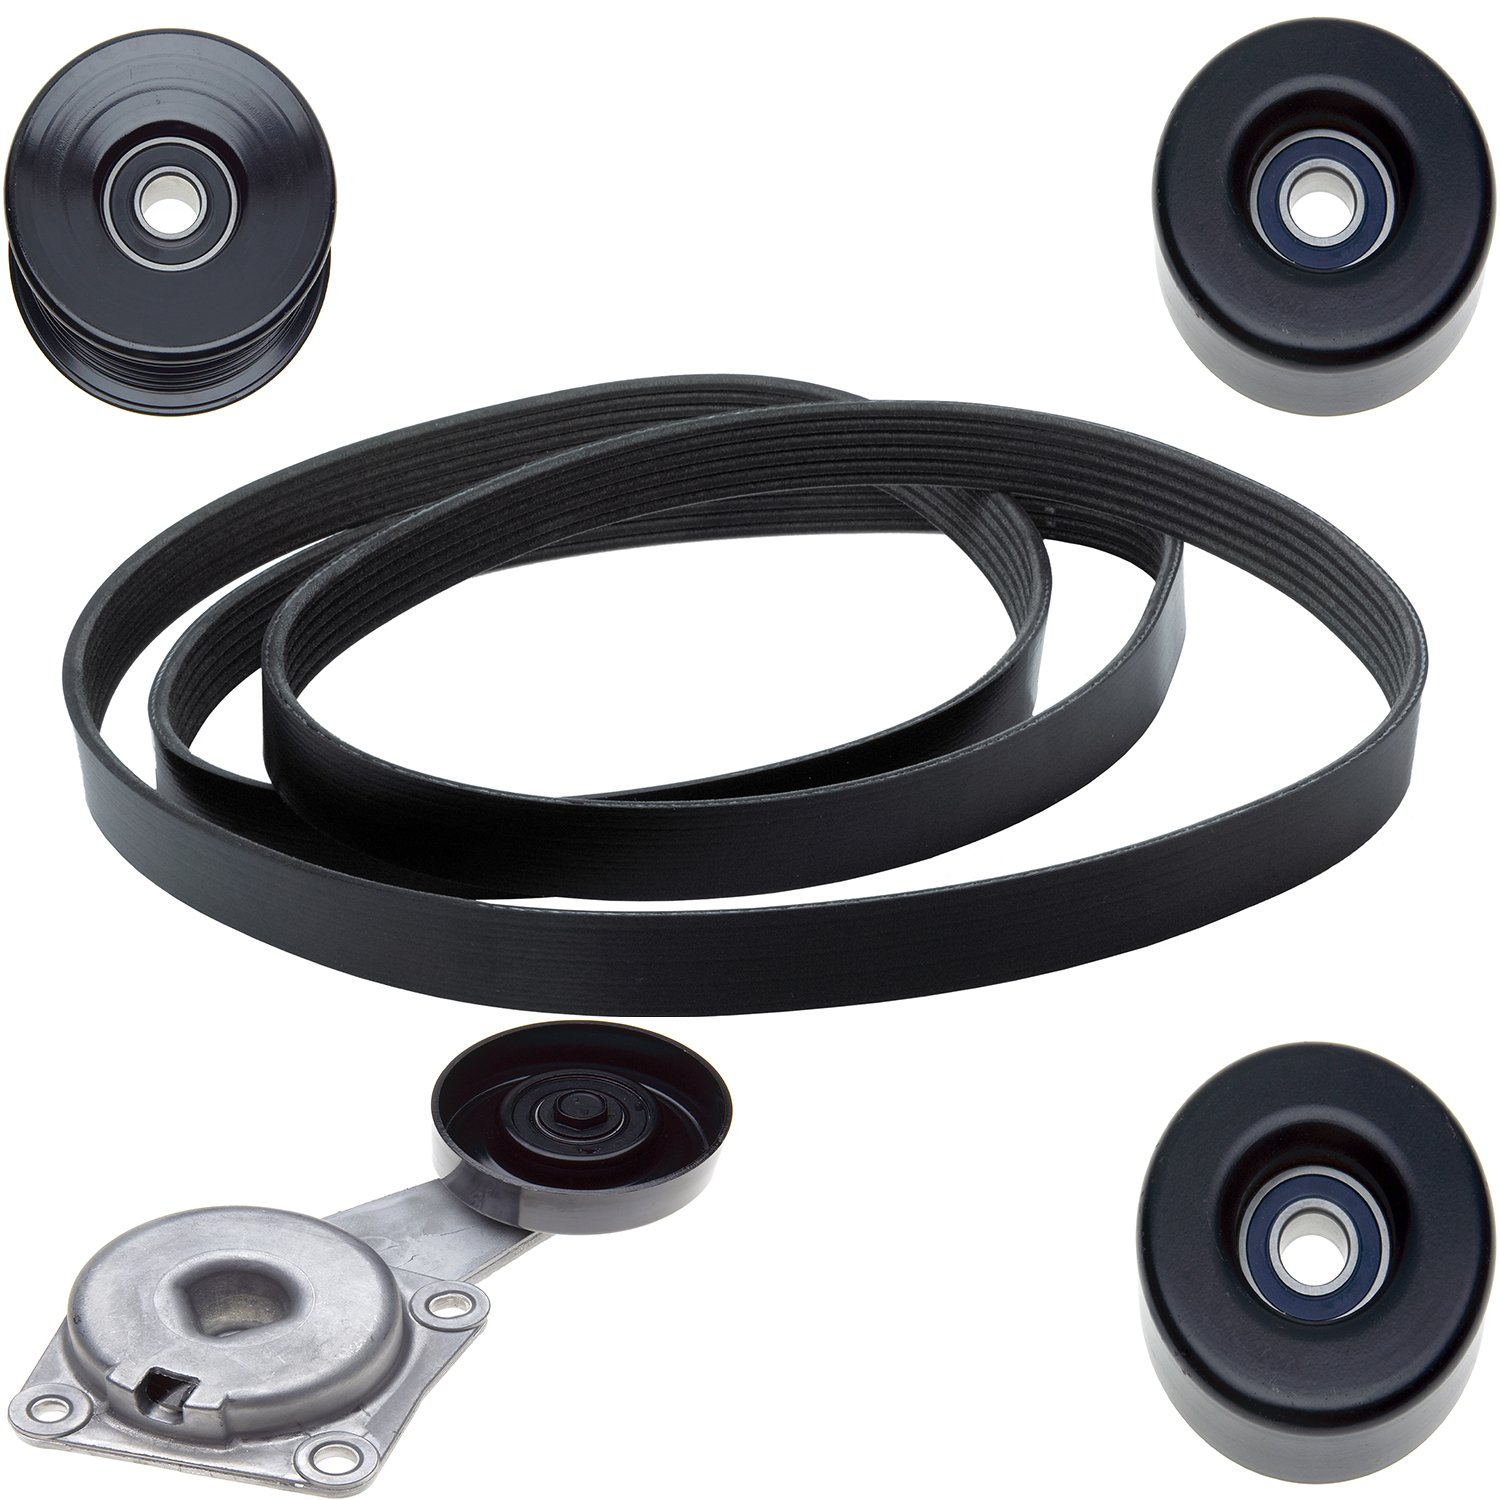 ACDelco ACK061031 Professional Automatic Belt Tensioner and Pulley Kit with Tensioner, Pulleys, and Belt by ACDelco